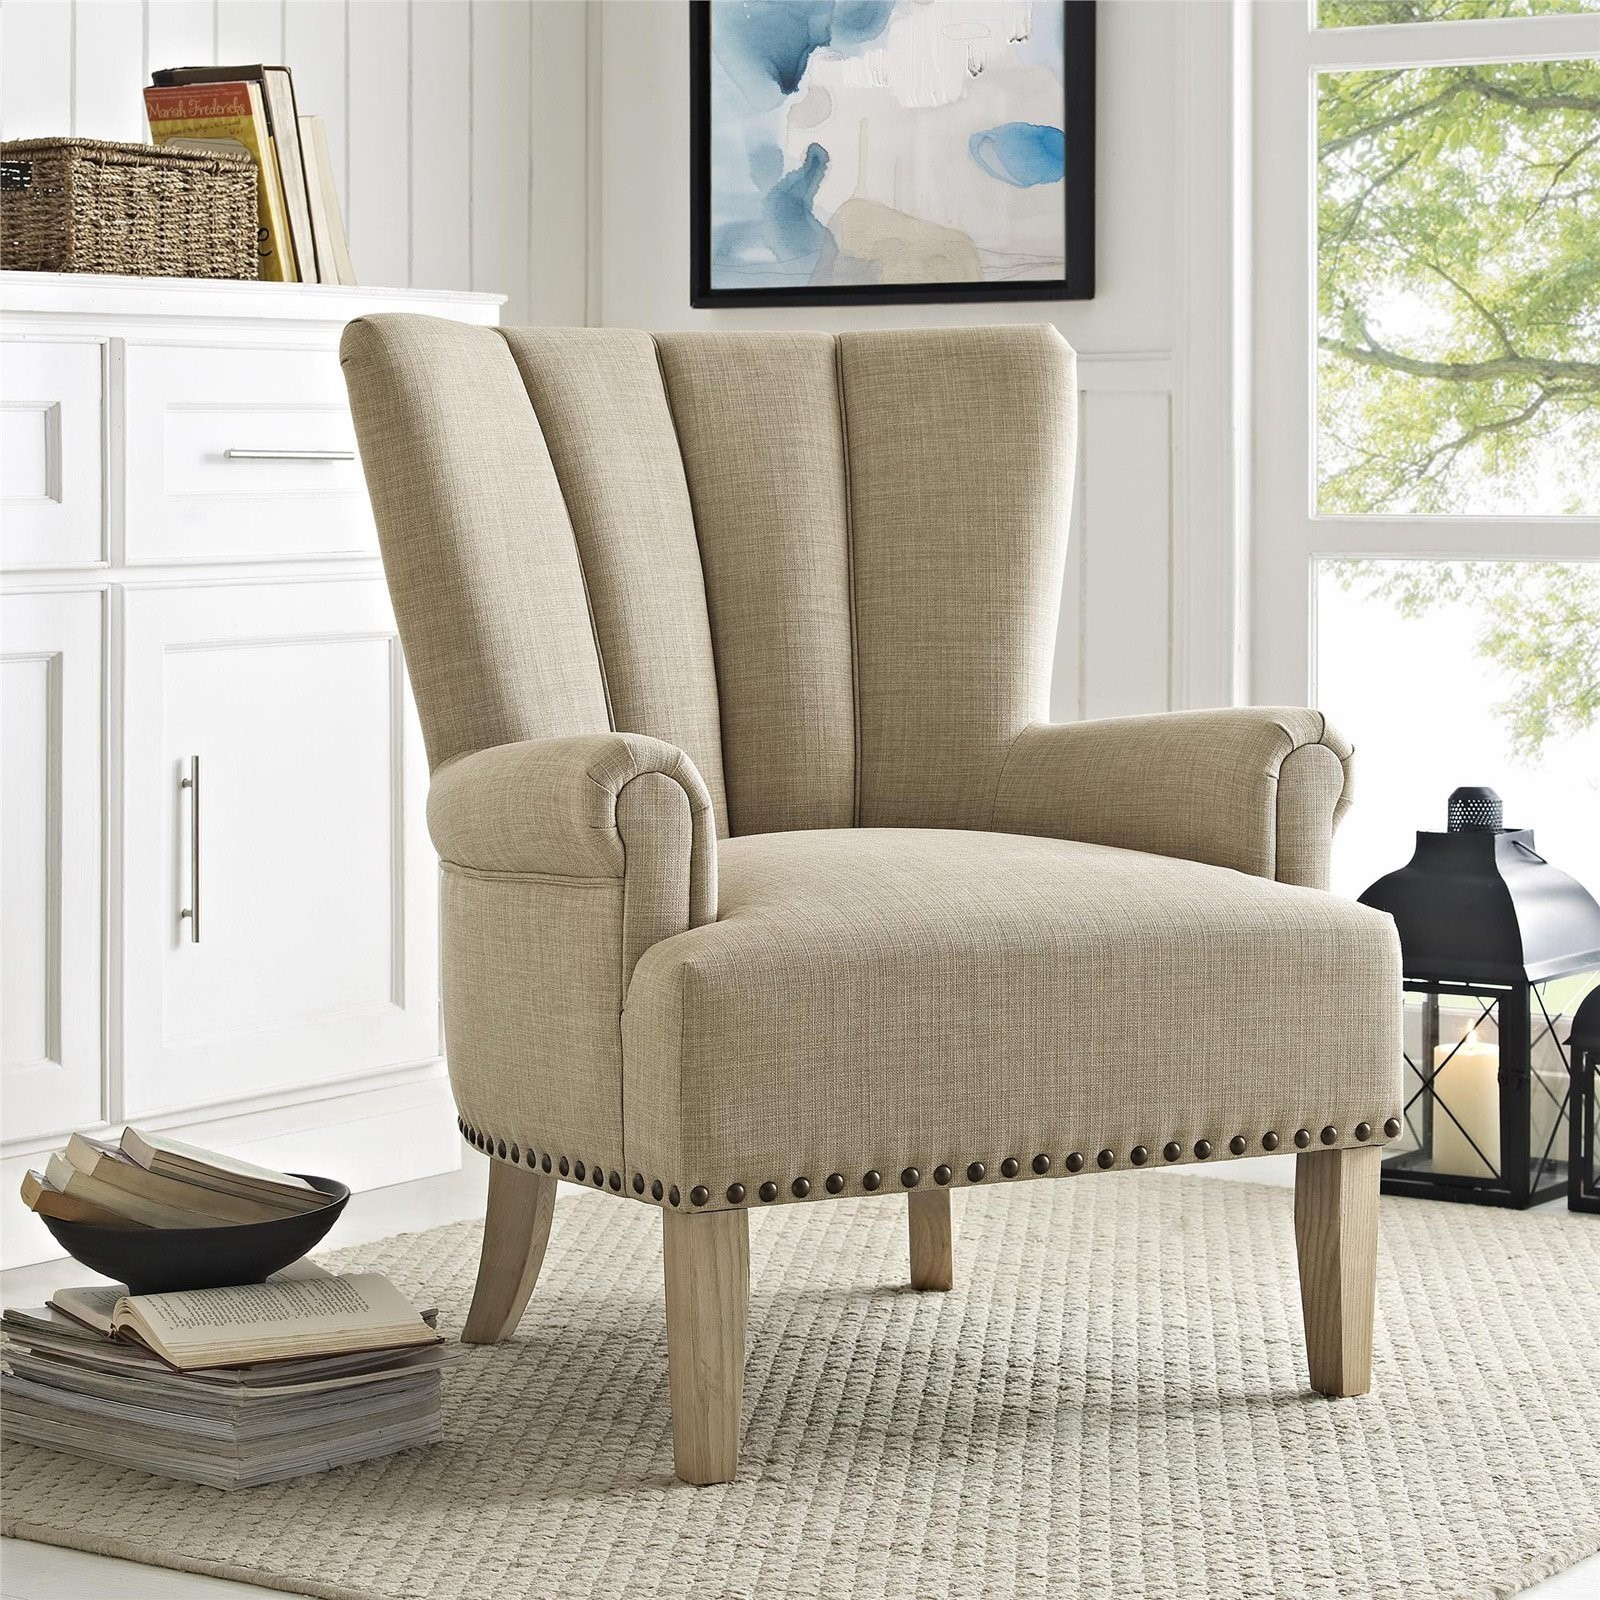 One Accent Chair Sitting Area: Better Homes & Gardens Richmond Accent Chair, Beige